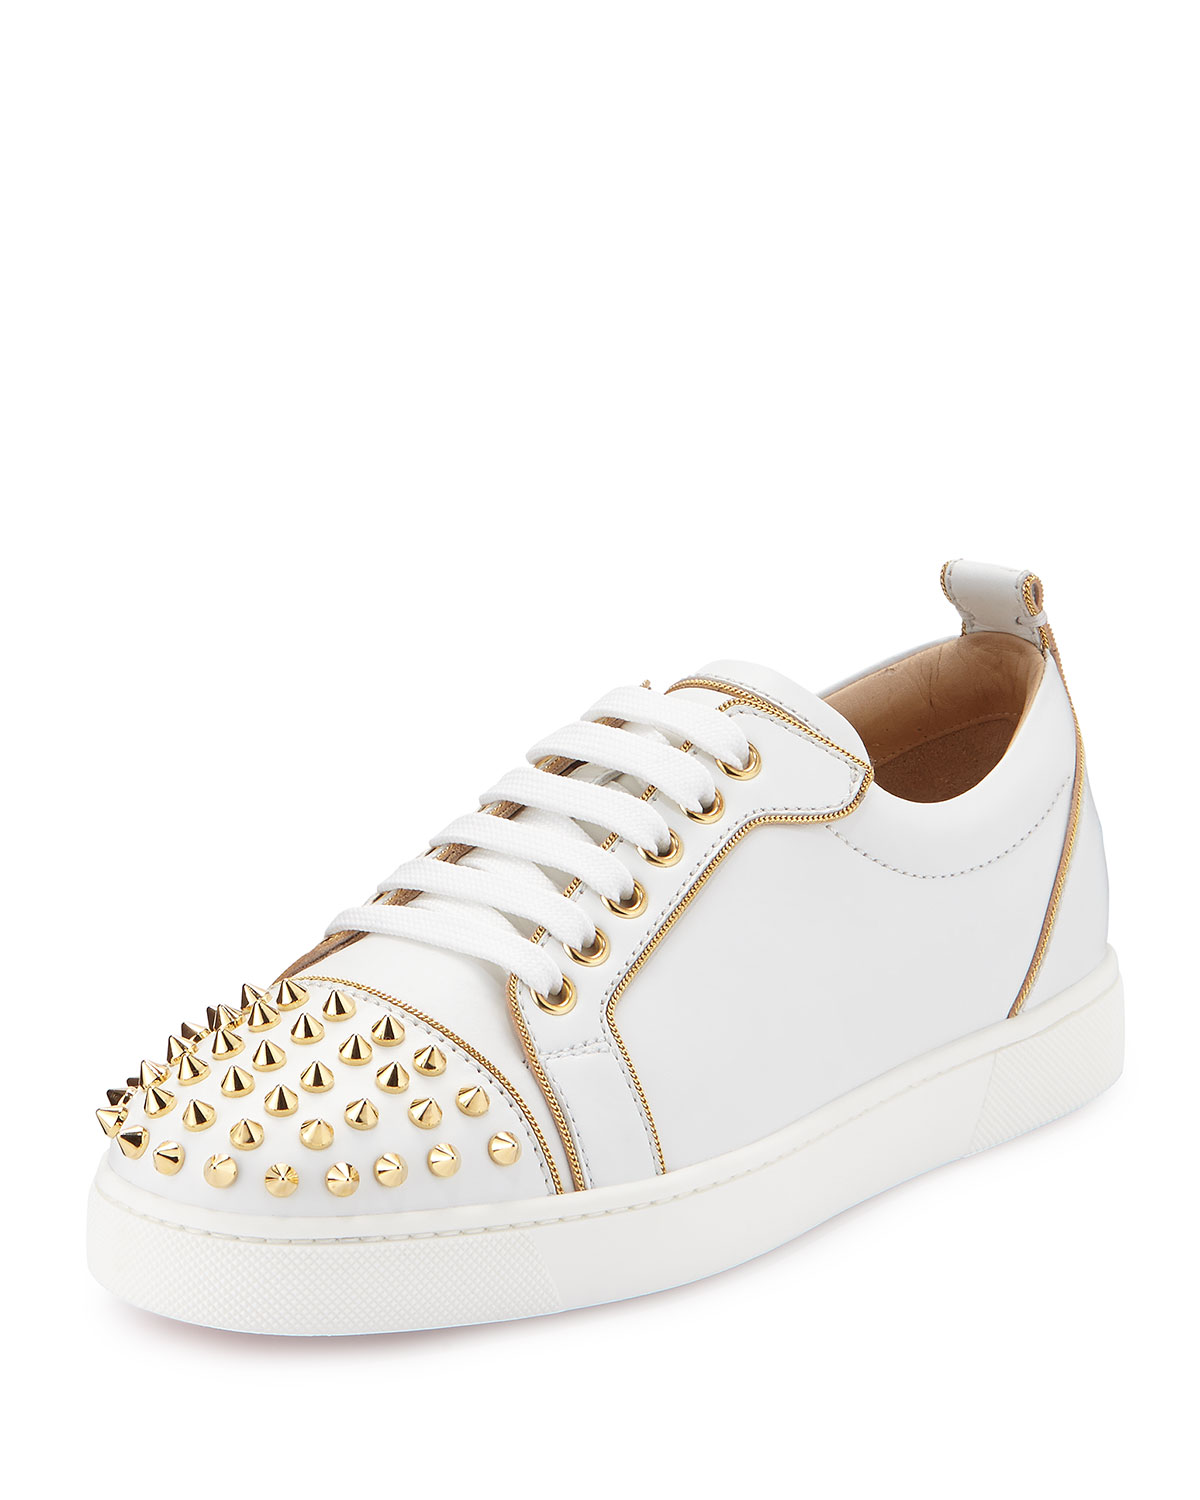 26e0082d4a4 Christian Louboutin Rush Spiked Leather Low-Top Sneaker